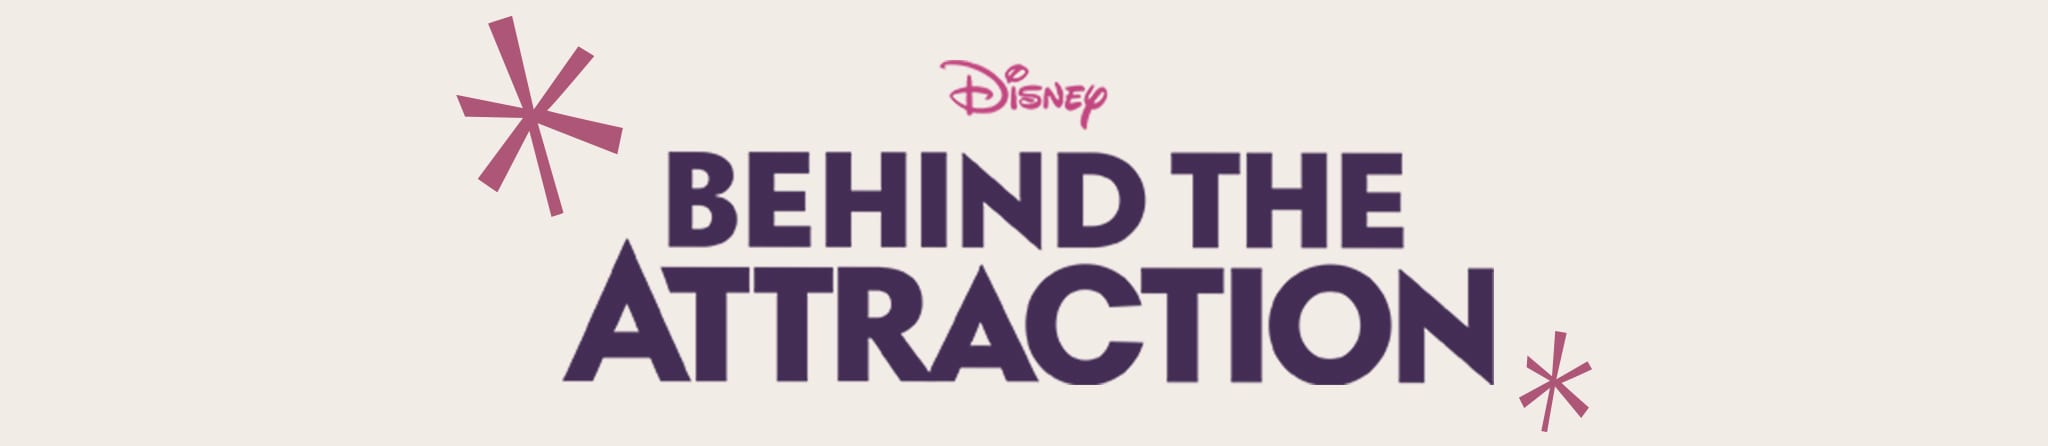 Disney | Behind the Attraction